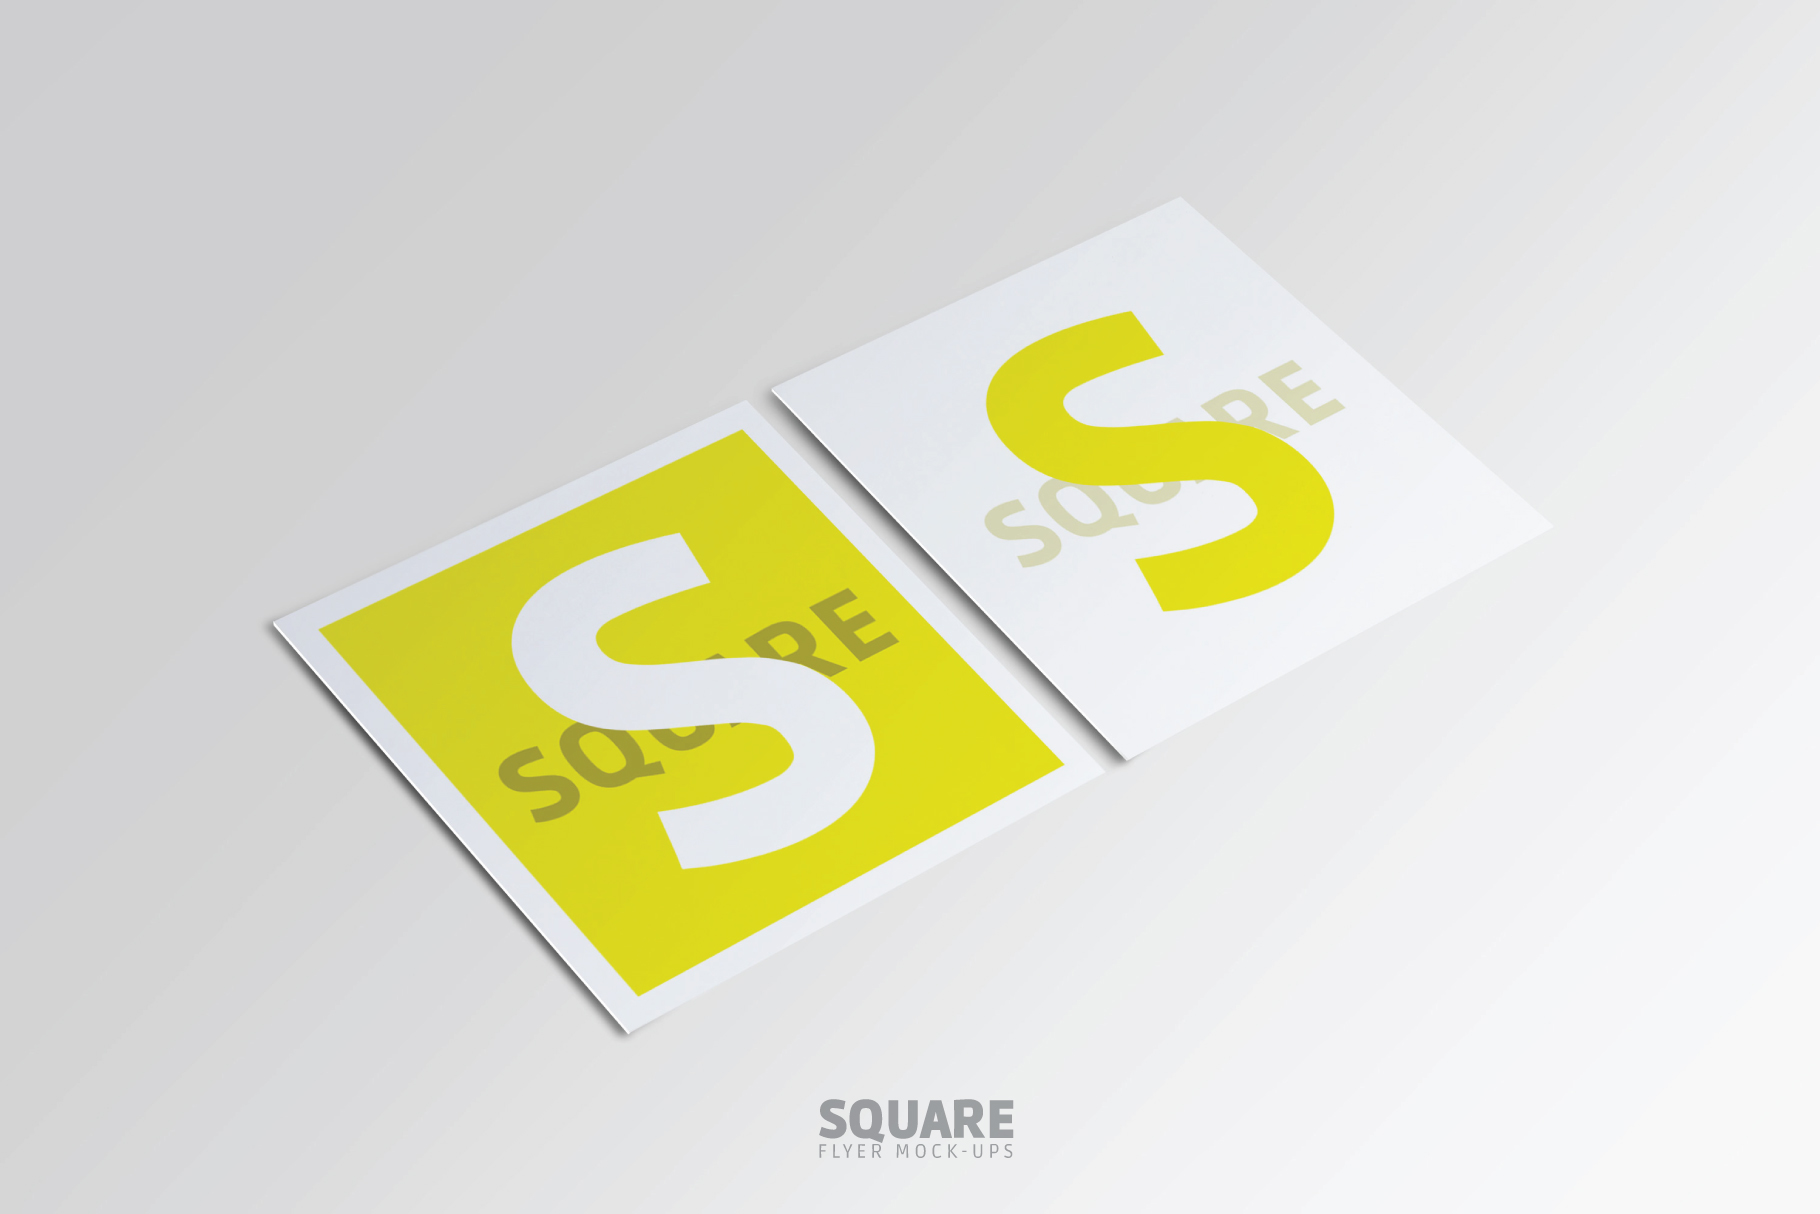 Square Flyer Mock-Up example image 8